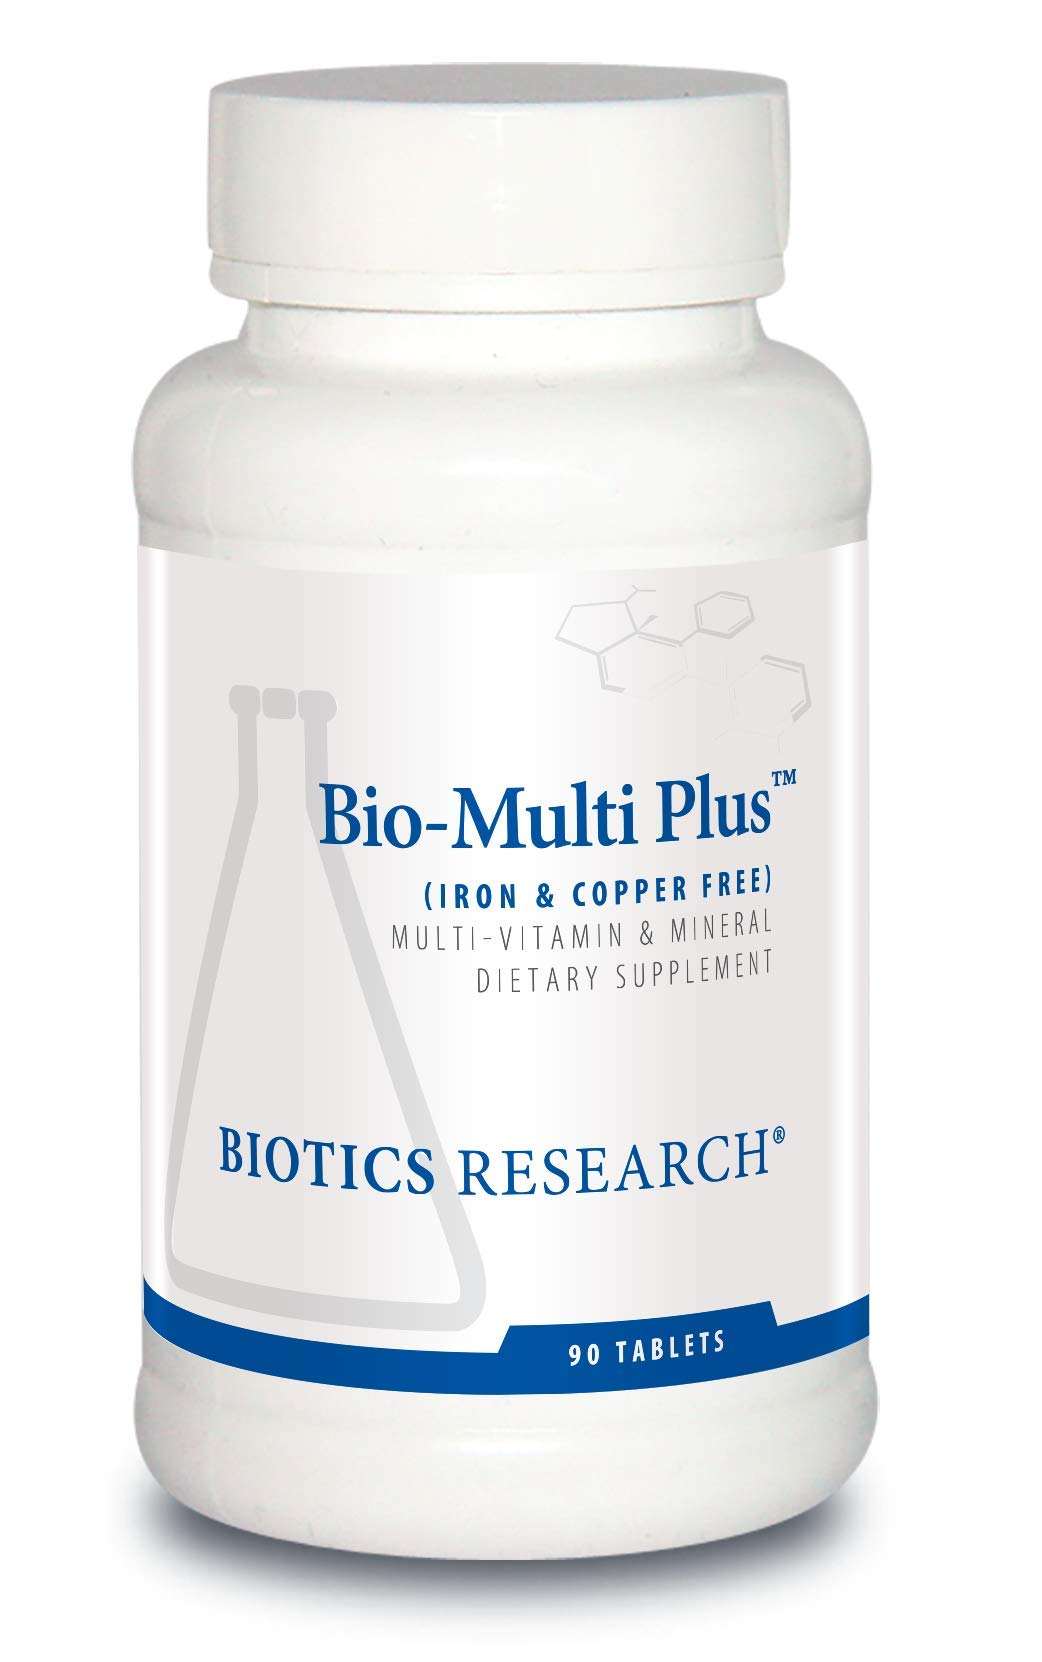 Biotics Research Bio-Multi Plus TM (Iron & Copper Free) - Multivitamin, Chelated Minerals, Emulsified Fat-Soluble Vitamins, Iron Free, Copper Free, High antioxidants, SOD, Catalase 90ct